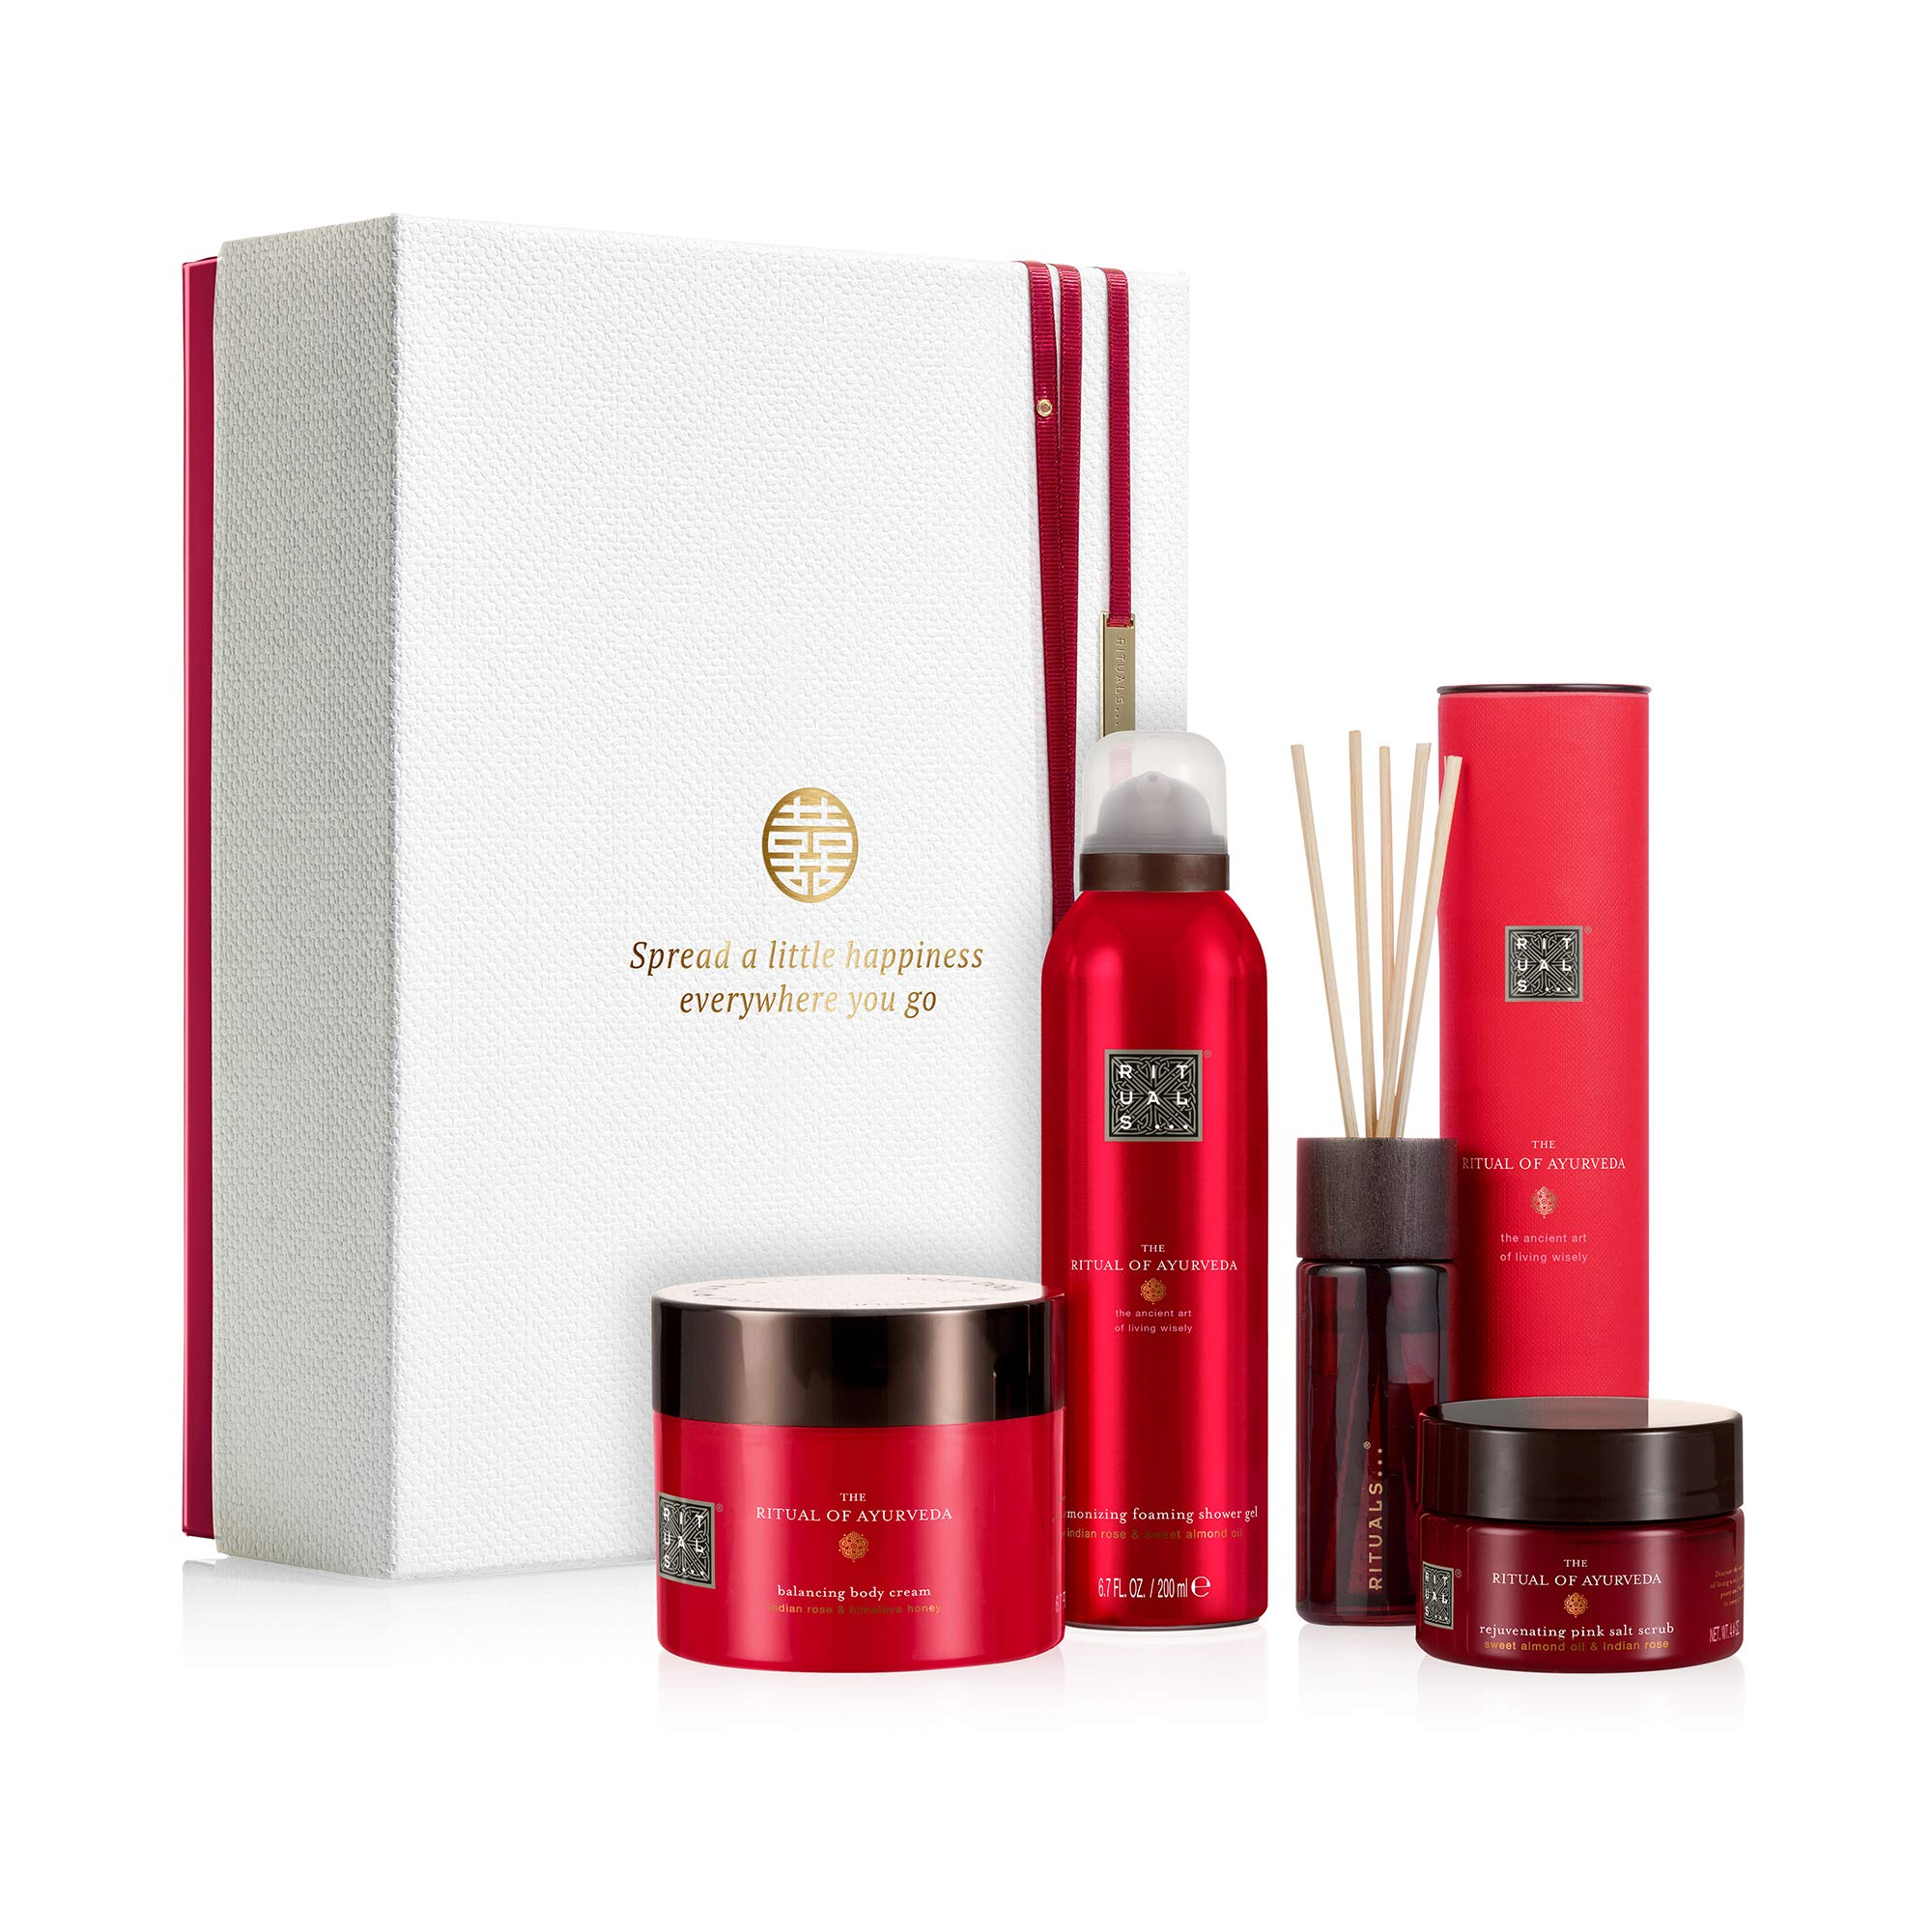 RITUALS The Ritual of Ayurveda Luxury and Relaxing Beauty Gift Set Large for Women, contains a shower foam, body scrub, body cream and mini fragrance sticks